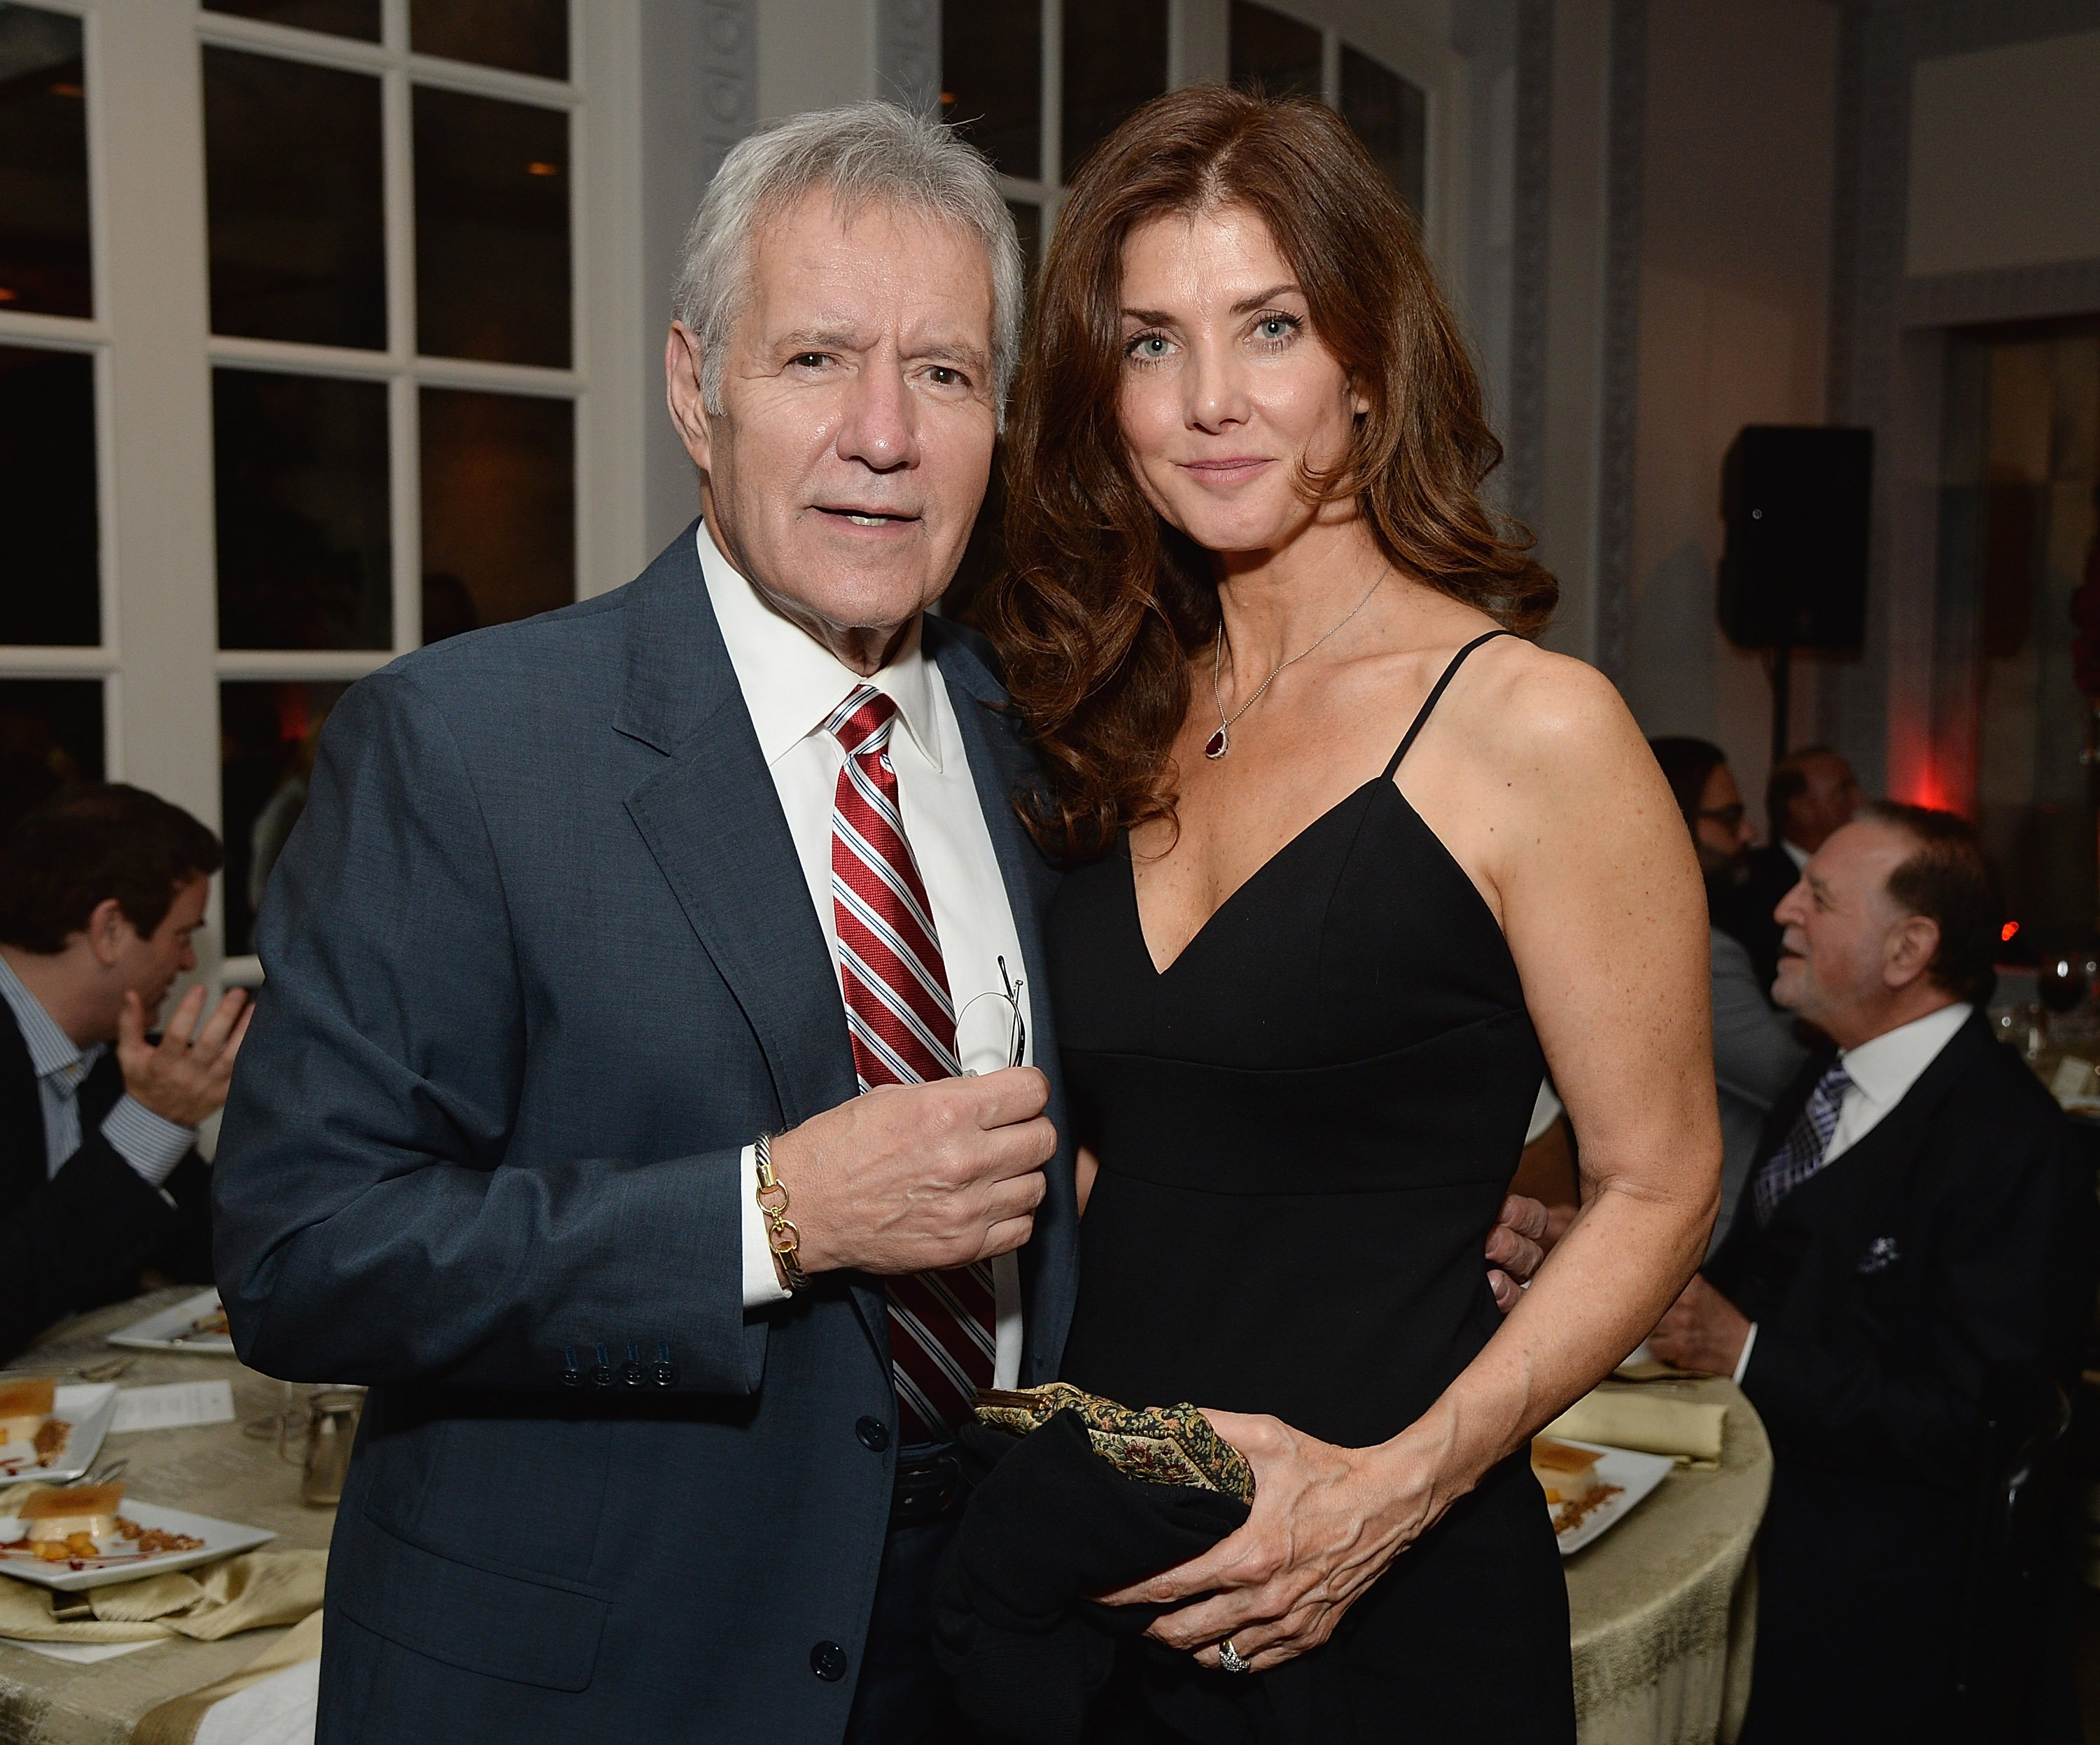 Trebek and his wife of 29 years, Jane Currivan. | Image credit: Getty Images